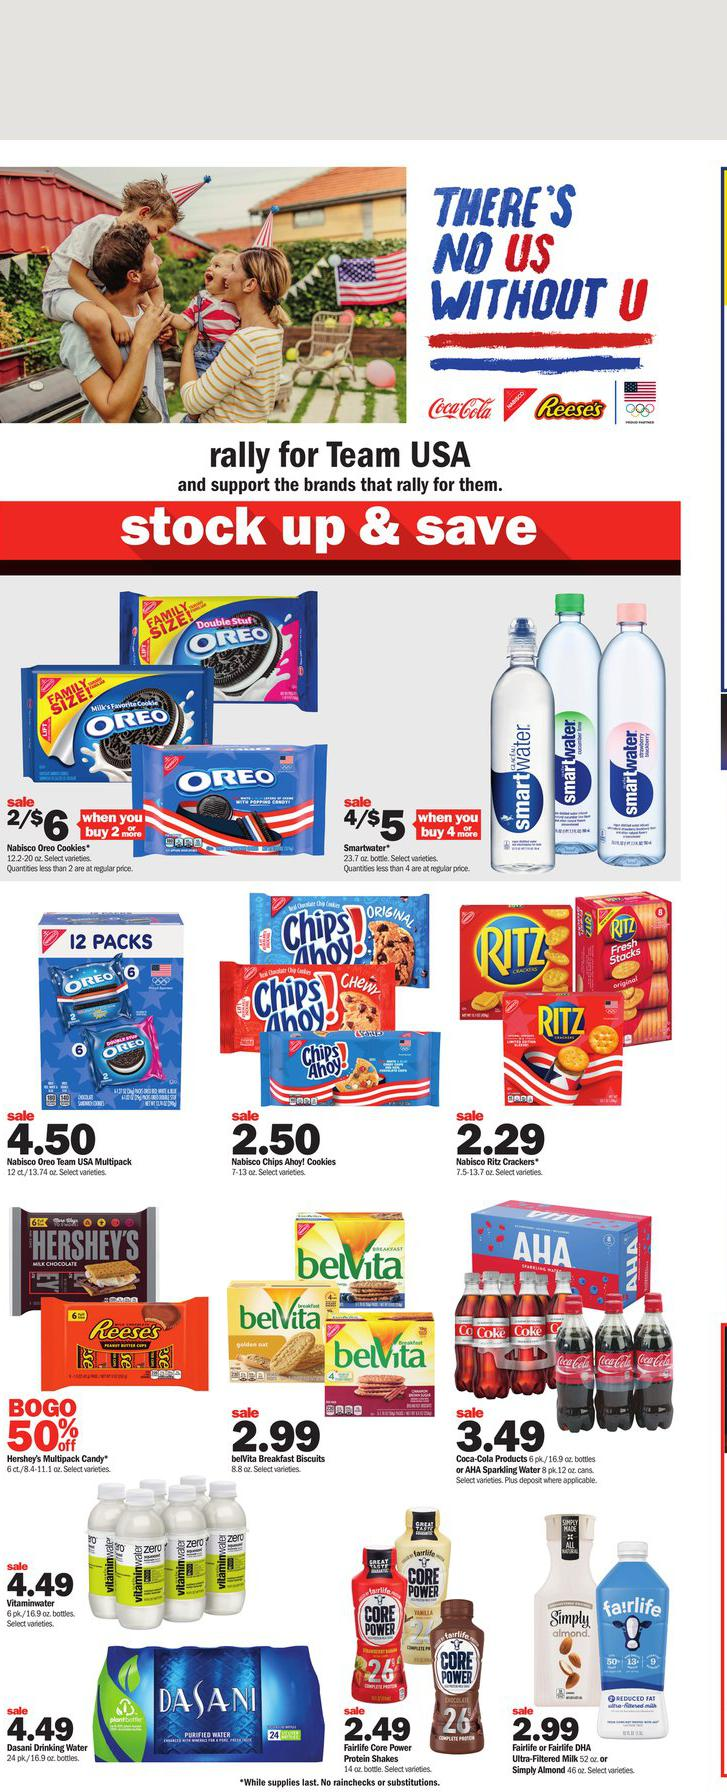 01.08.2021 Meijer ad 5. page